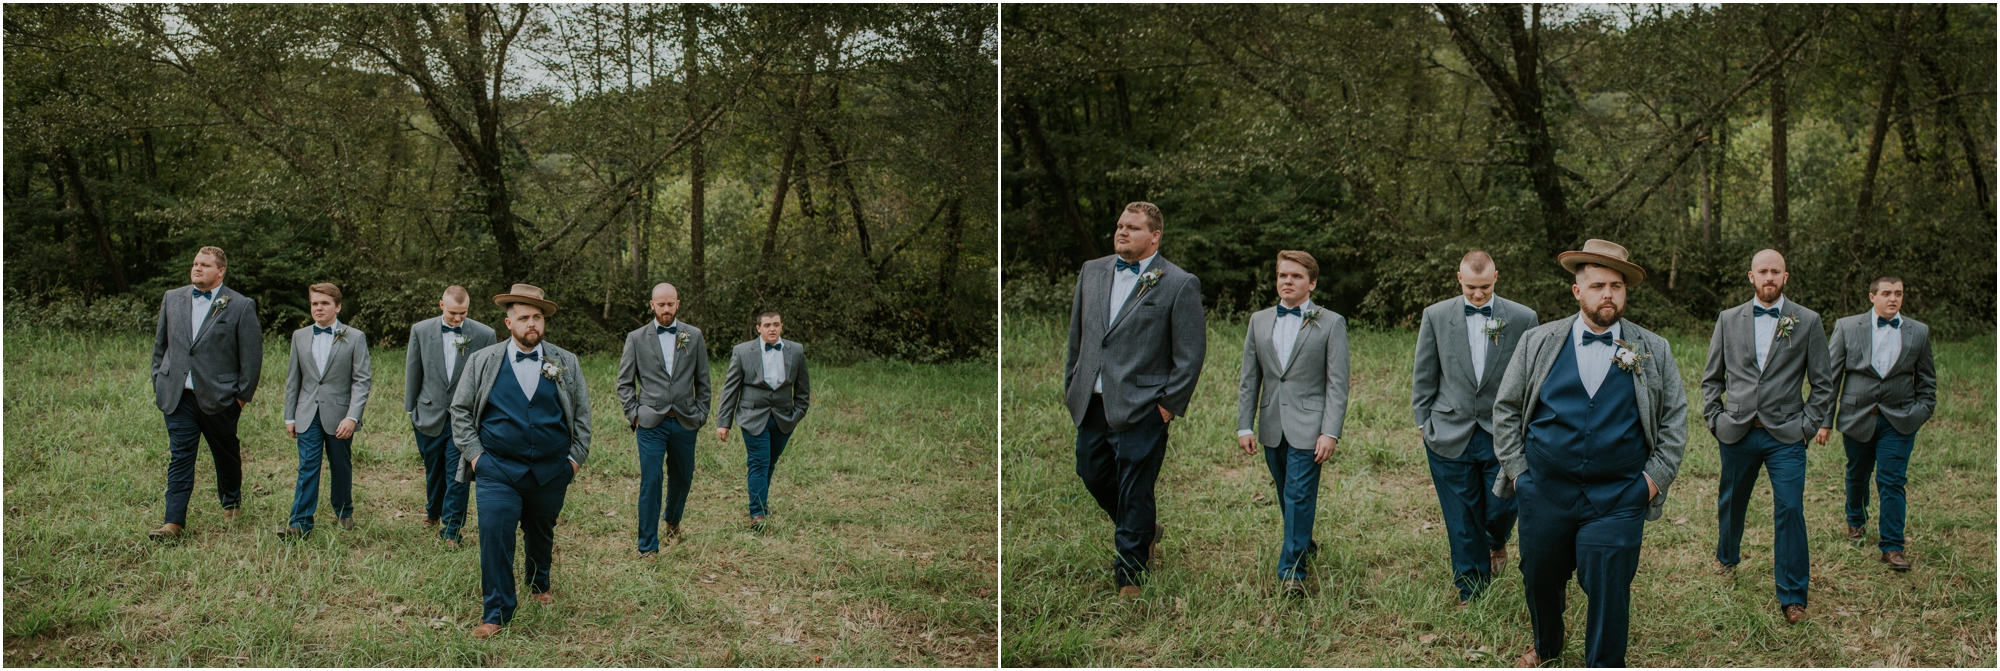 caryville-robbins-middle-tennessee-intimate-cozy-fall-navy-rustic-backyard-wedding_0063.jpg